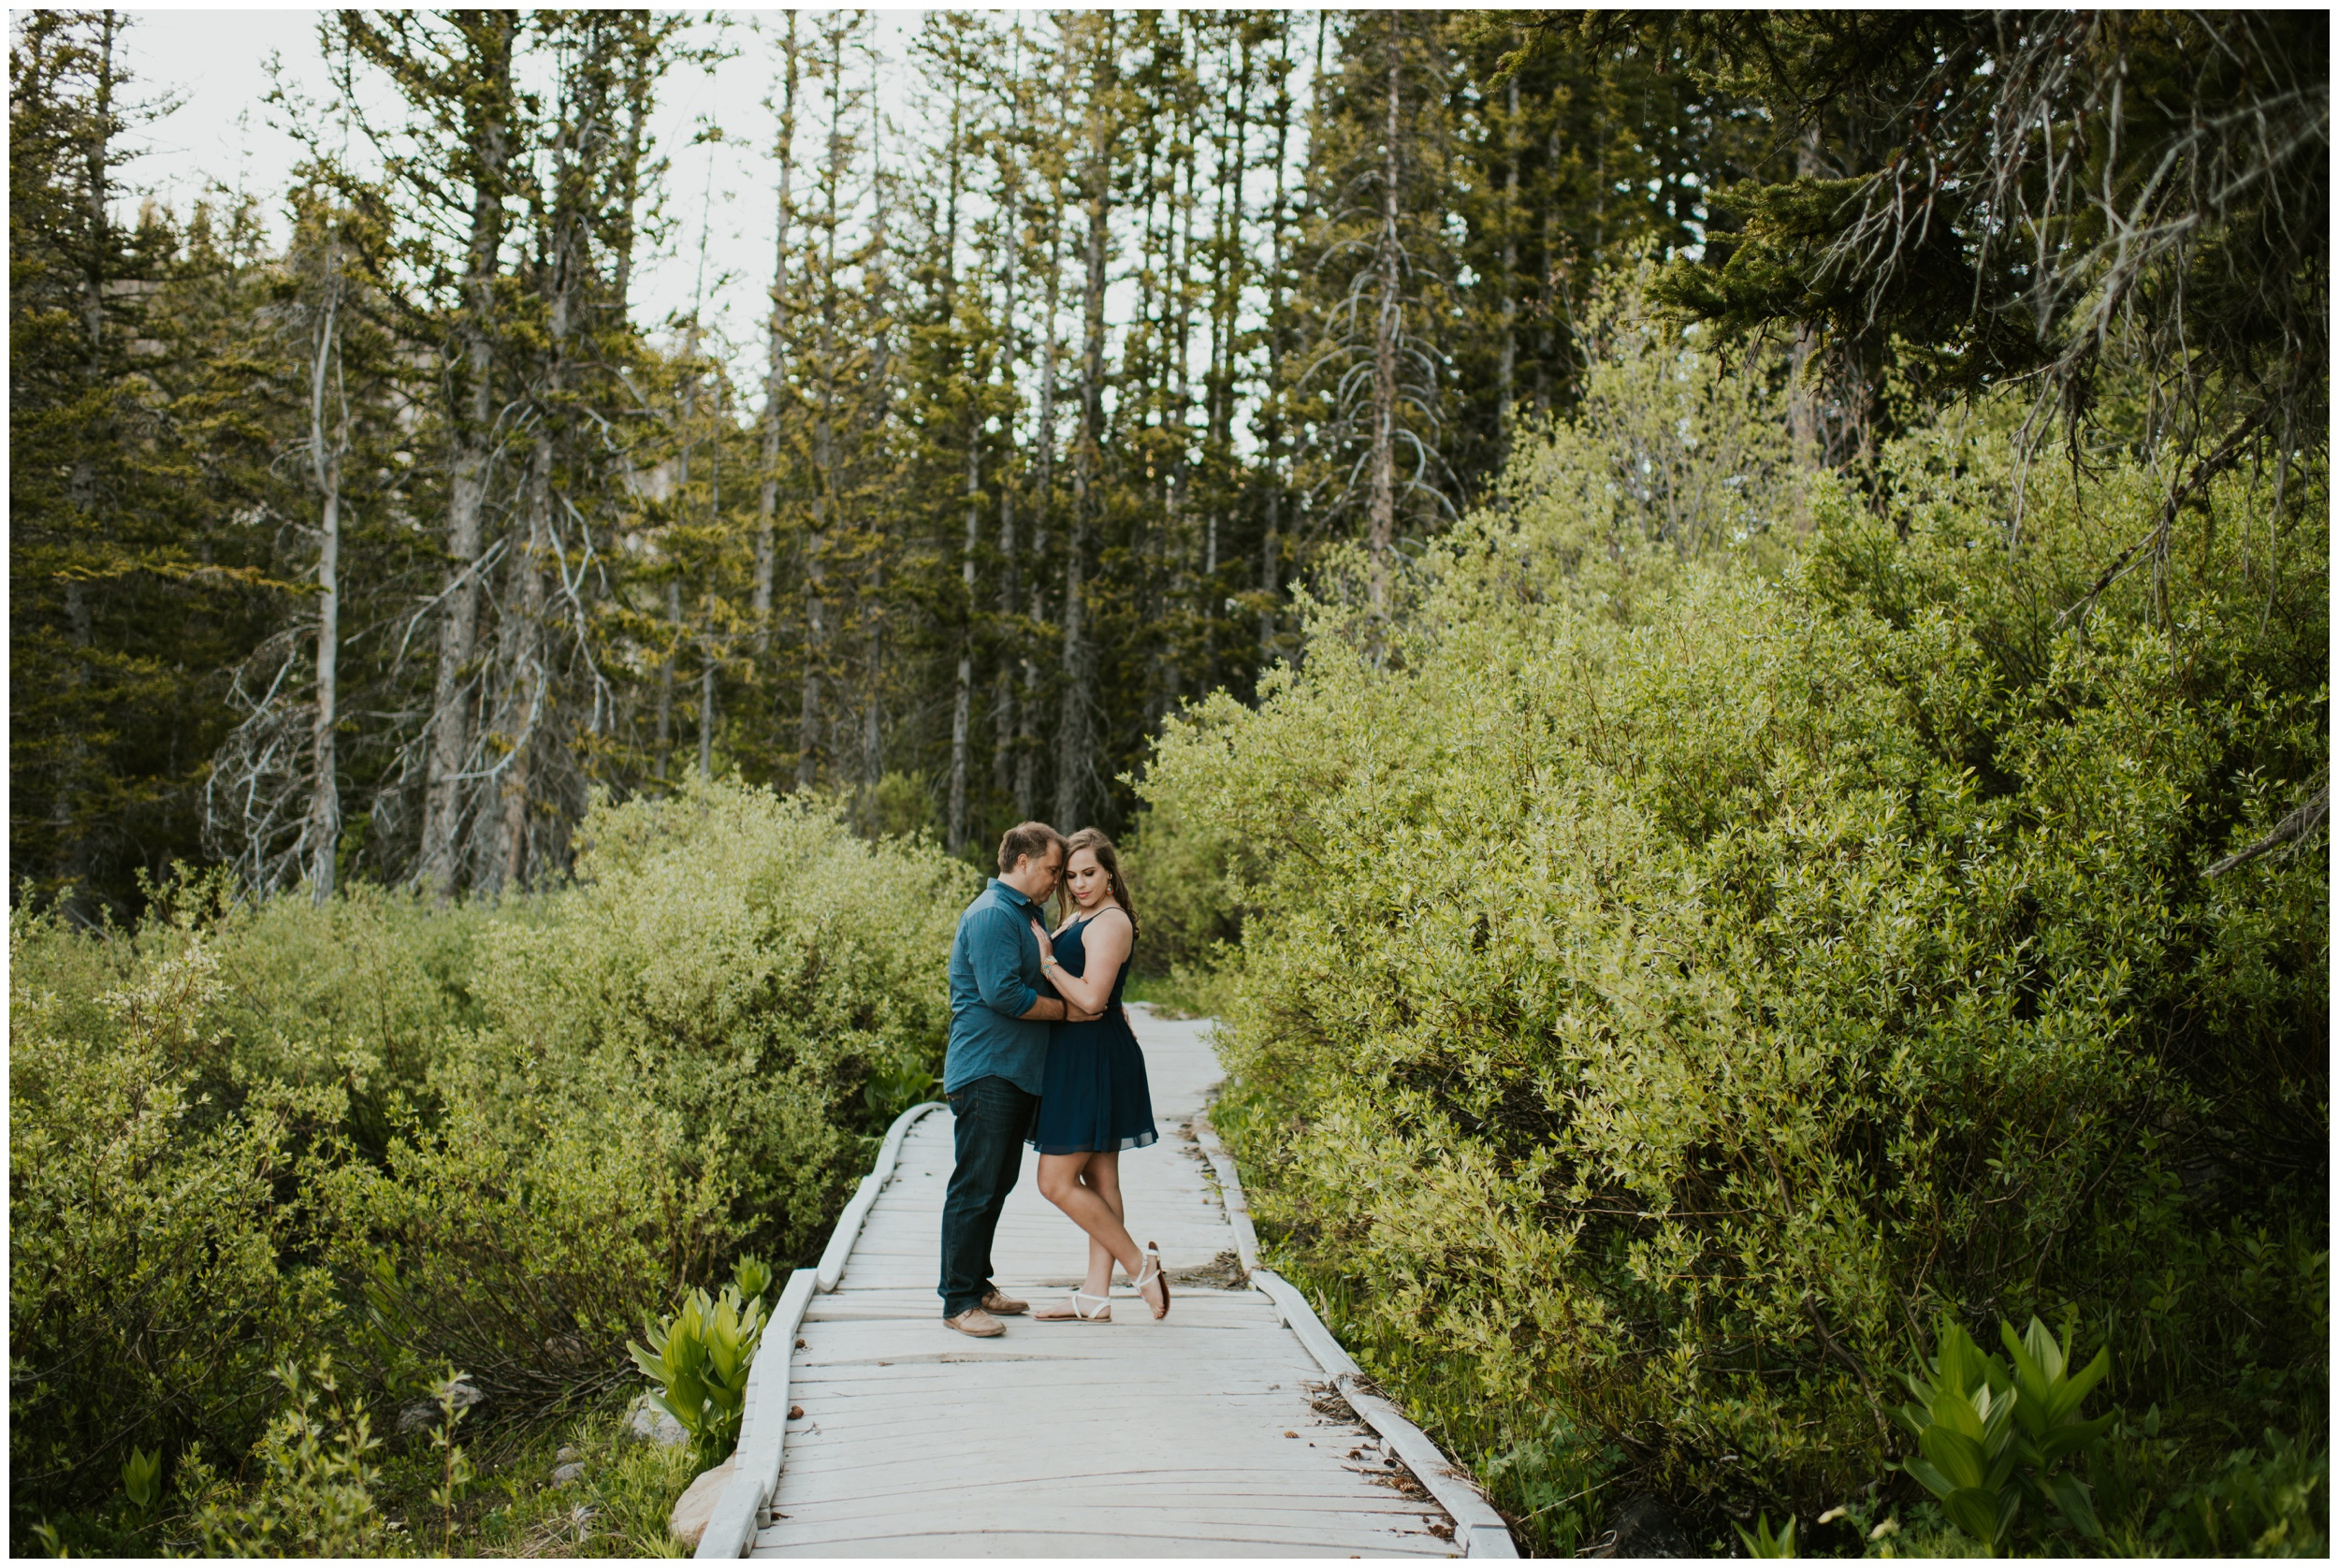 Tony Grove Engagement Photos. Logan Utah Engagement Photographer